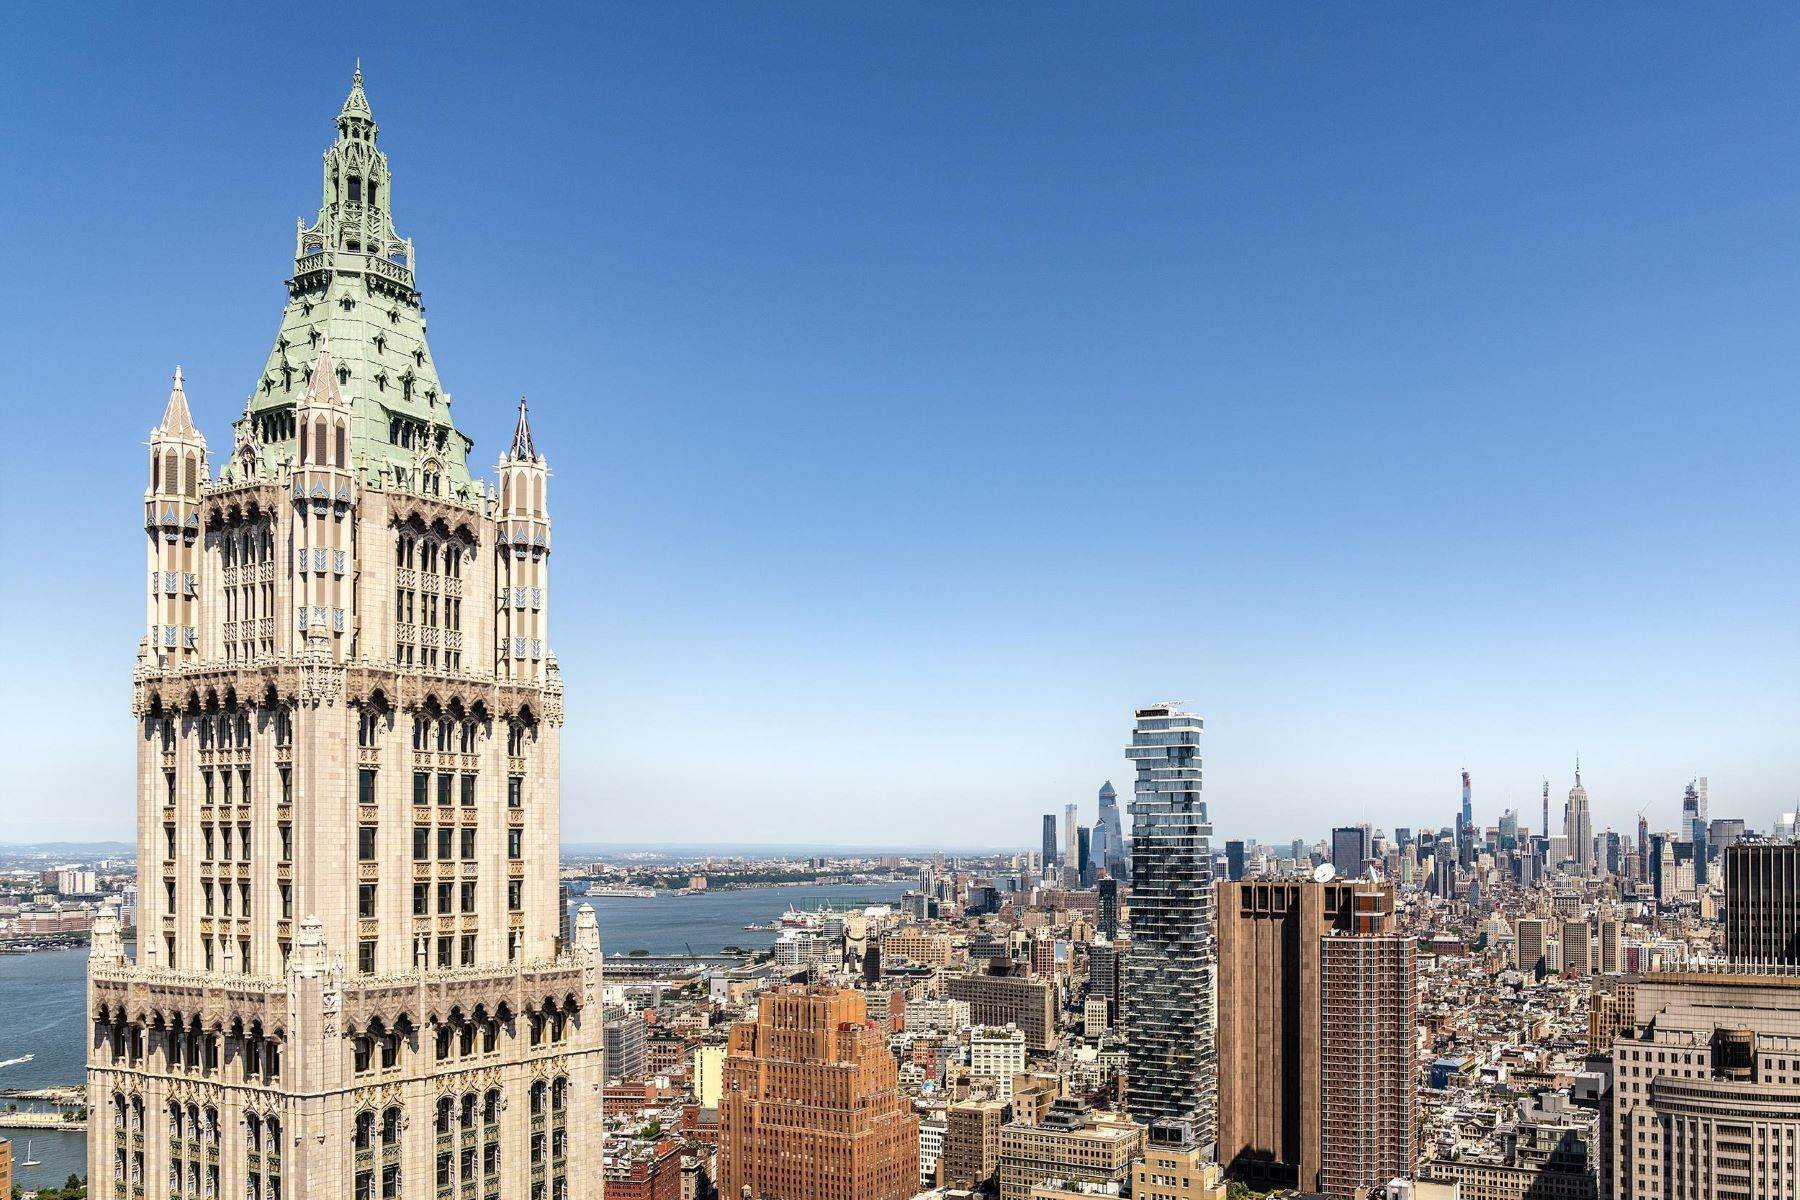 Property للـ Sale في The Pinnacle Penthouse 2 Park Place, Pinnacle Penthouse, New York, New York 10007 United States